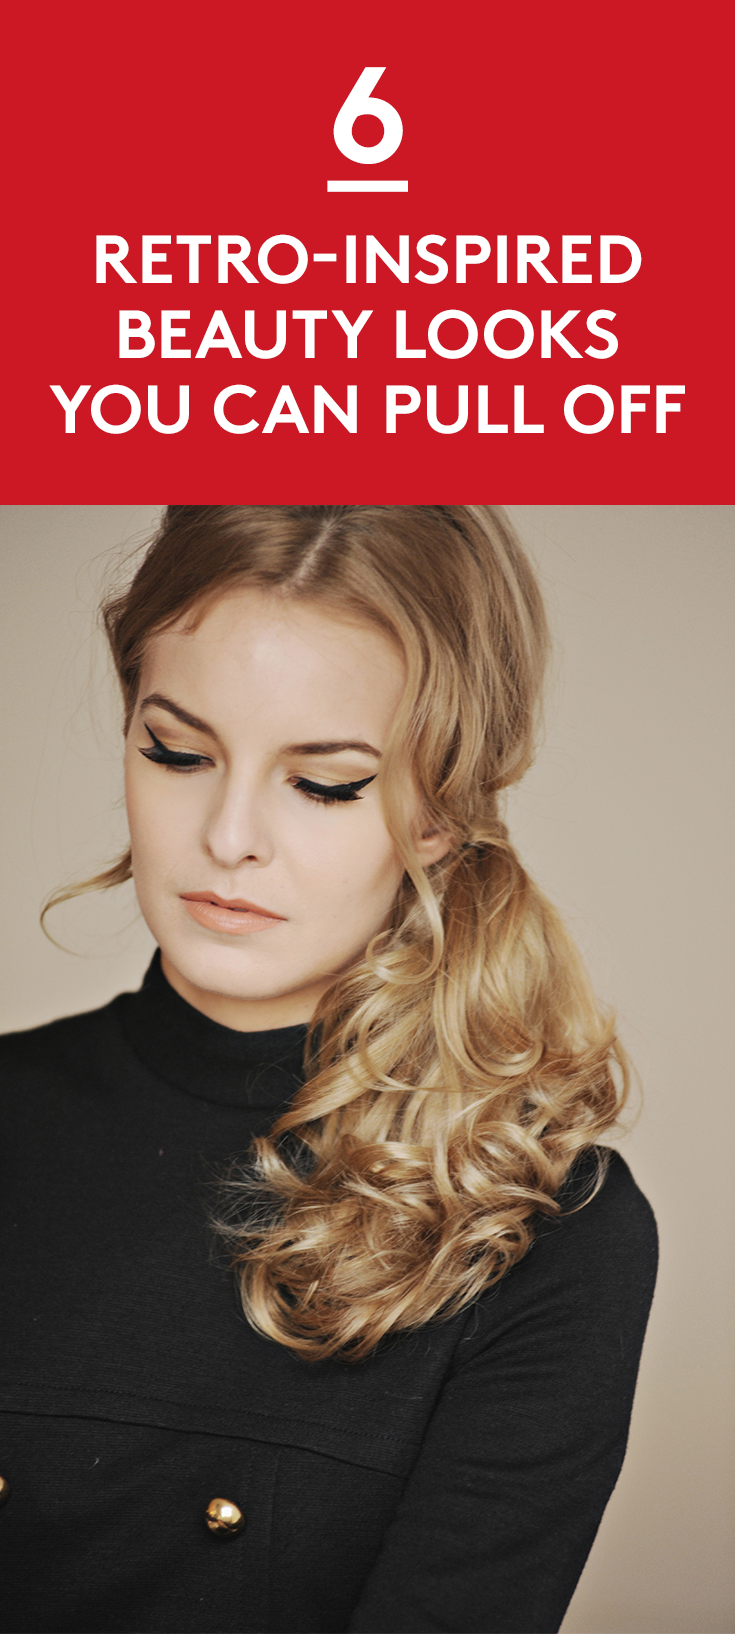 6 Retro-Inspired Beauty Looks You Can Pull Off | It's a mod, mod, mod, mod world! Swinging 60's hair and makeup still looks remarkably fresh, and with the help of our how-tos, retro-inspired beauty styles are easy to create. How groovy is that?